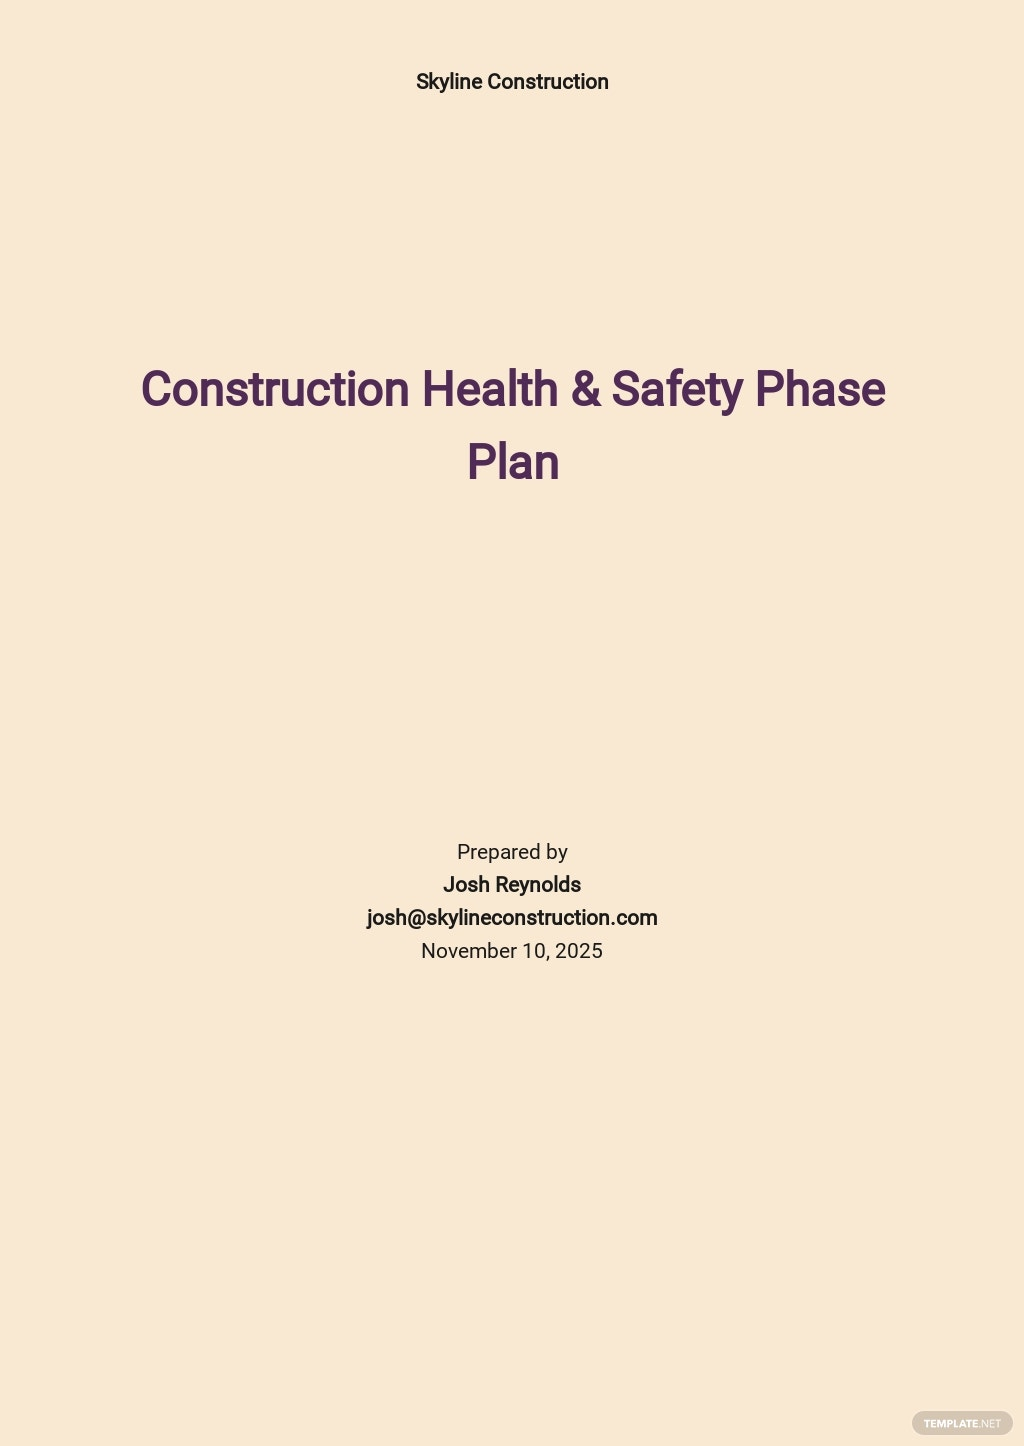 Construction Health & Safety Phase Plan Template.jpe